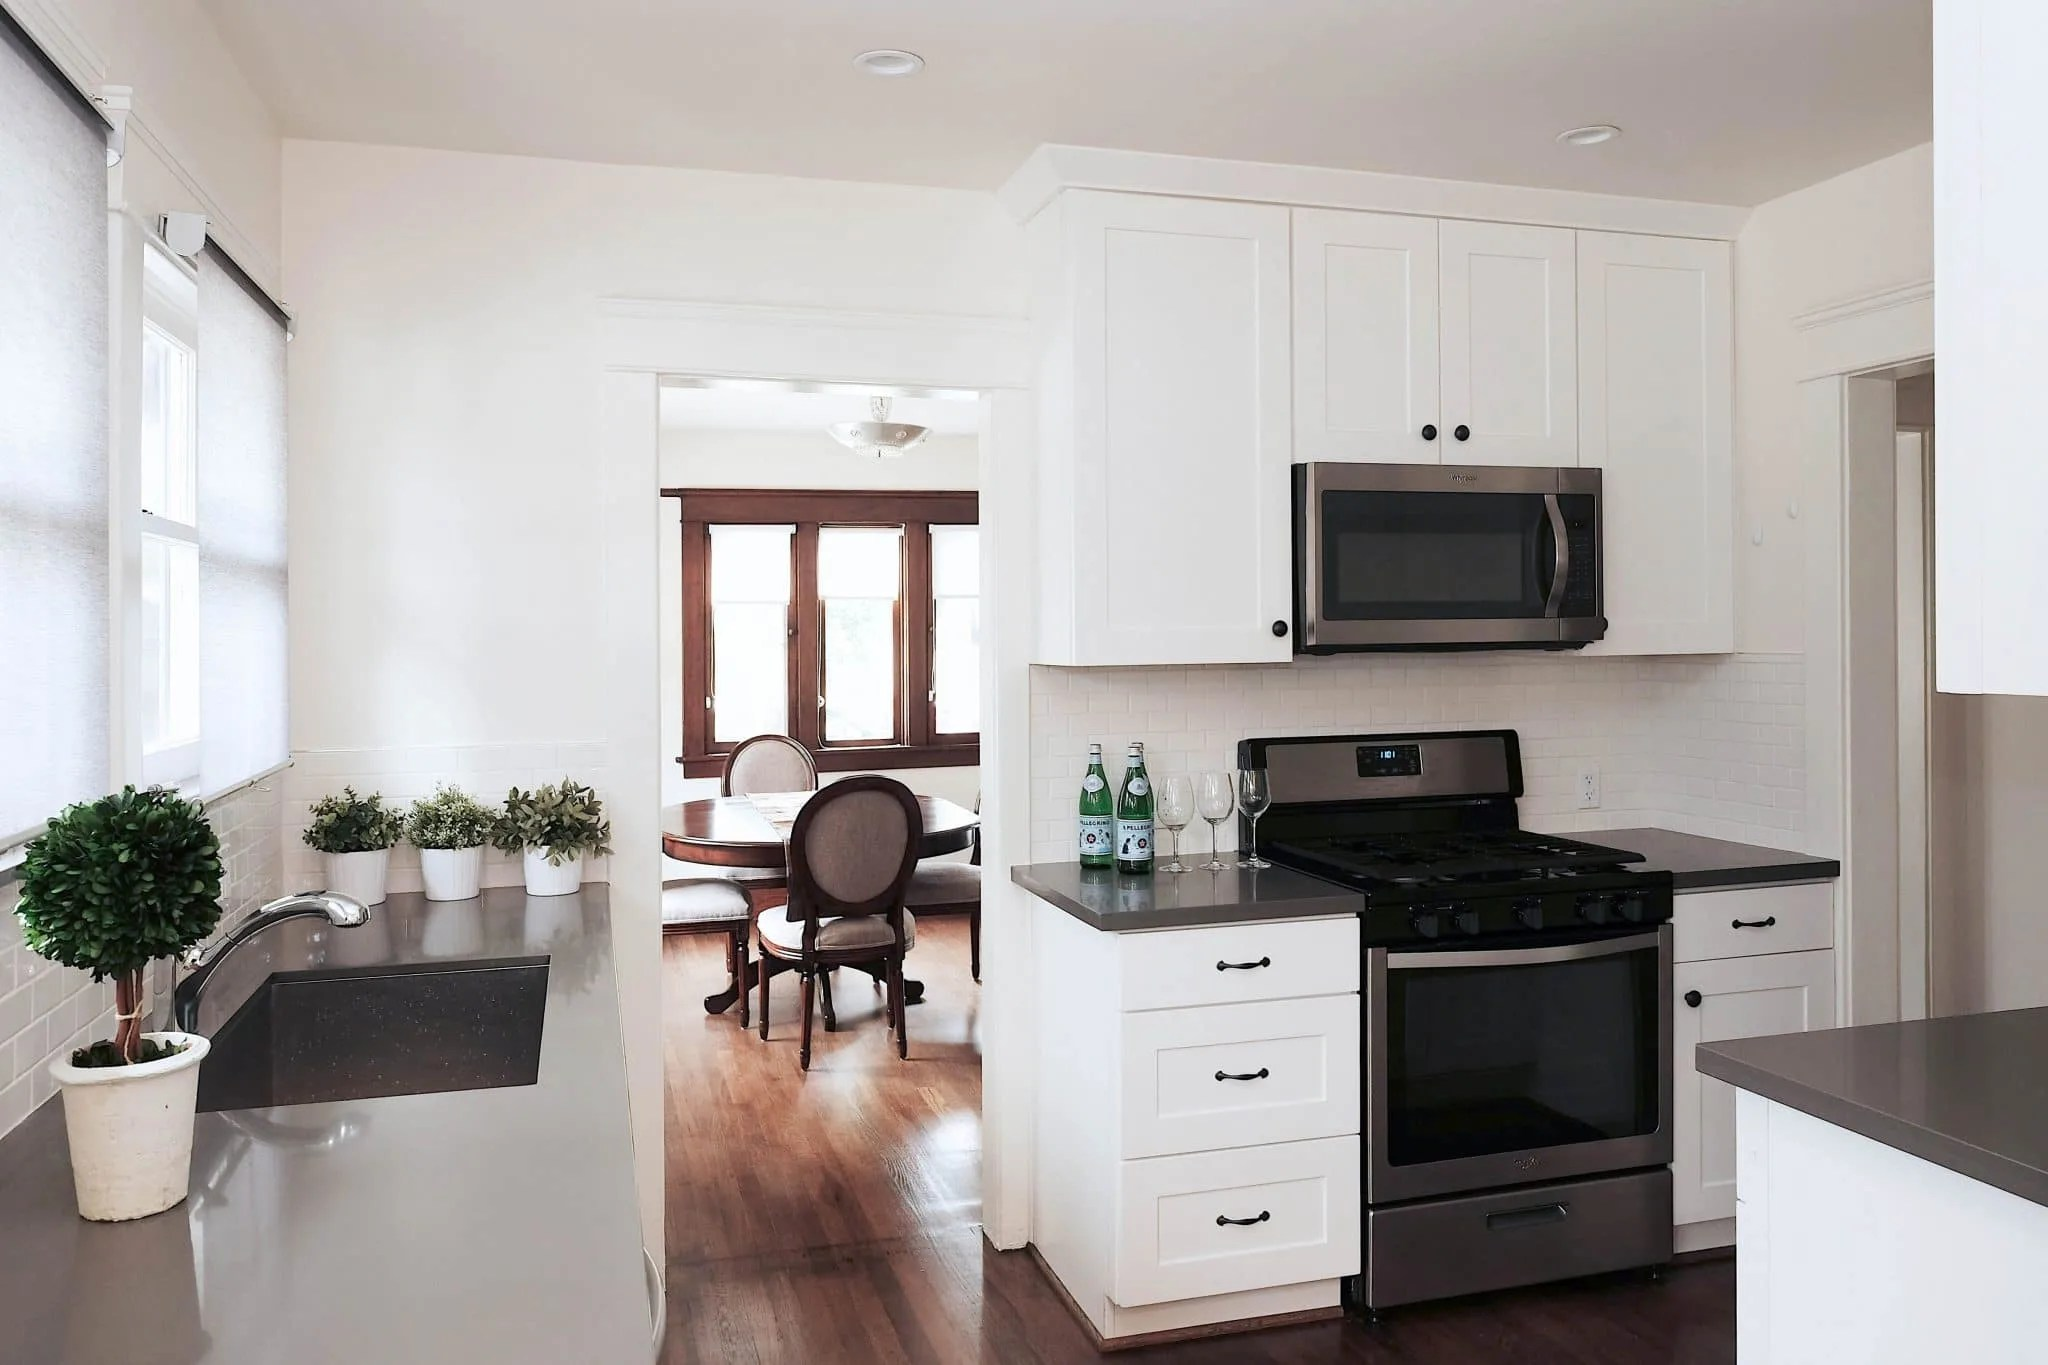 Find Kitchen Cabinets Buy Kitchen Cabinets Direct From The Manufacturer For